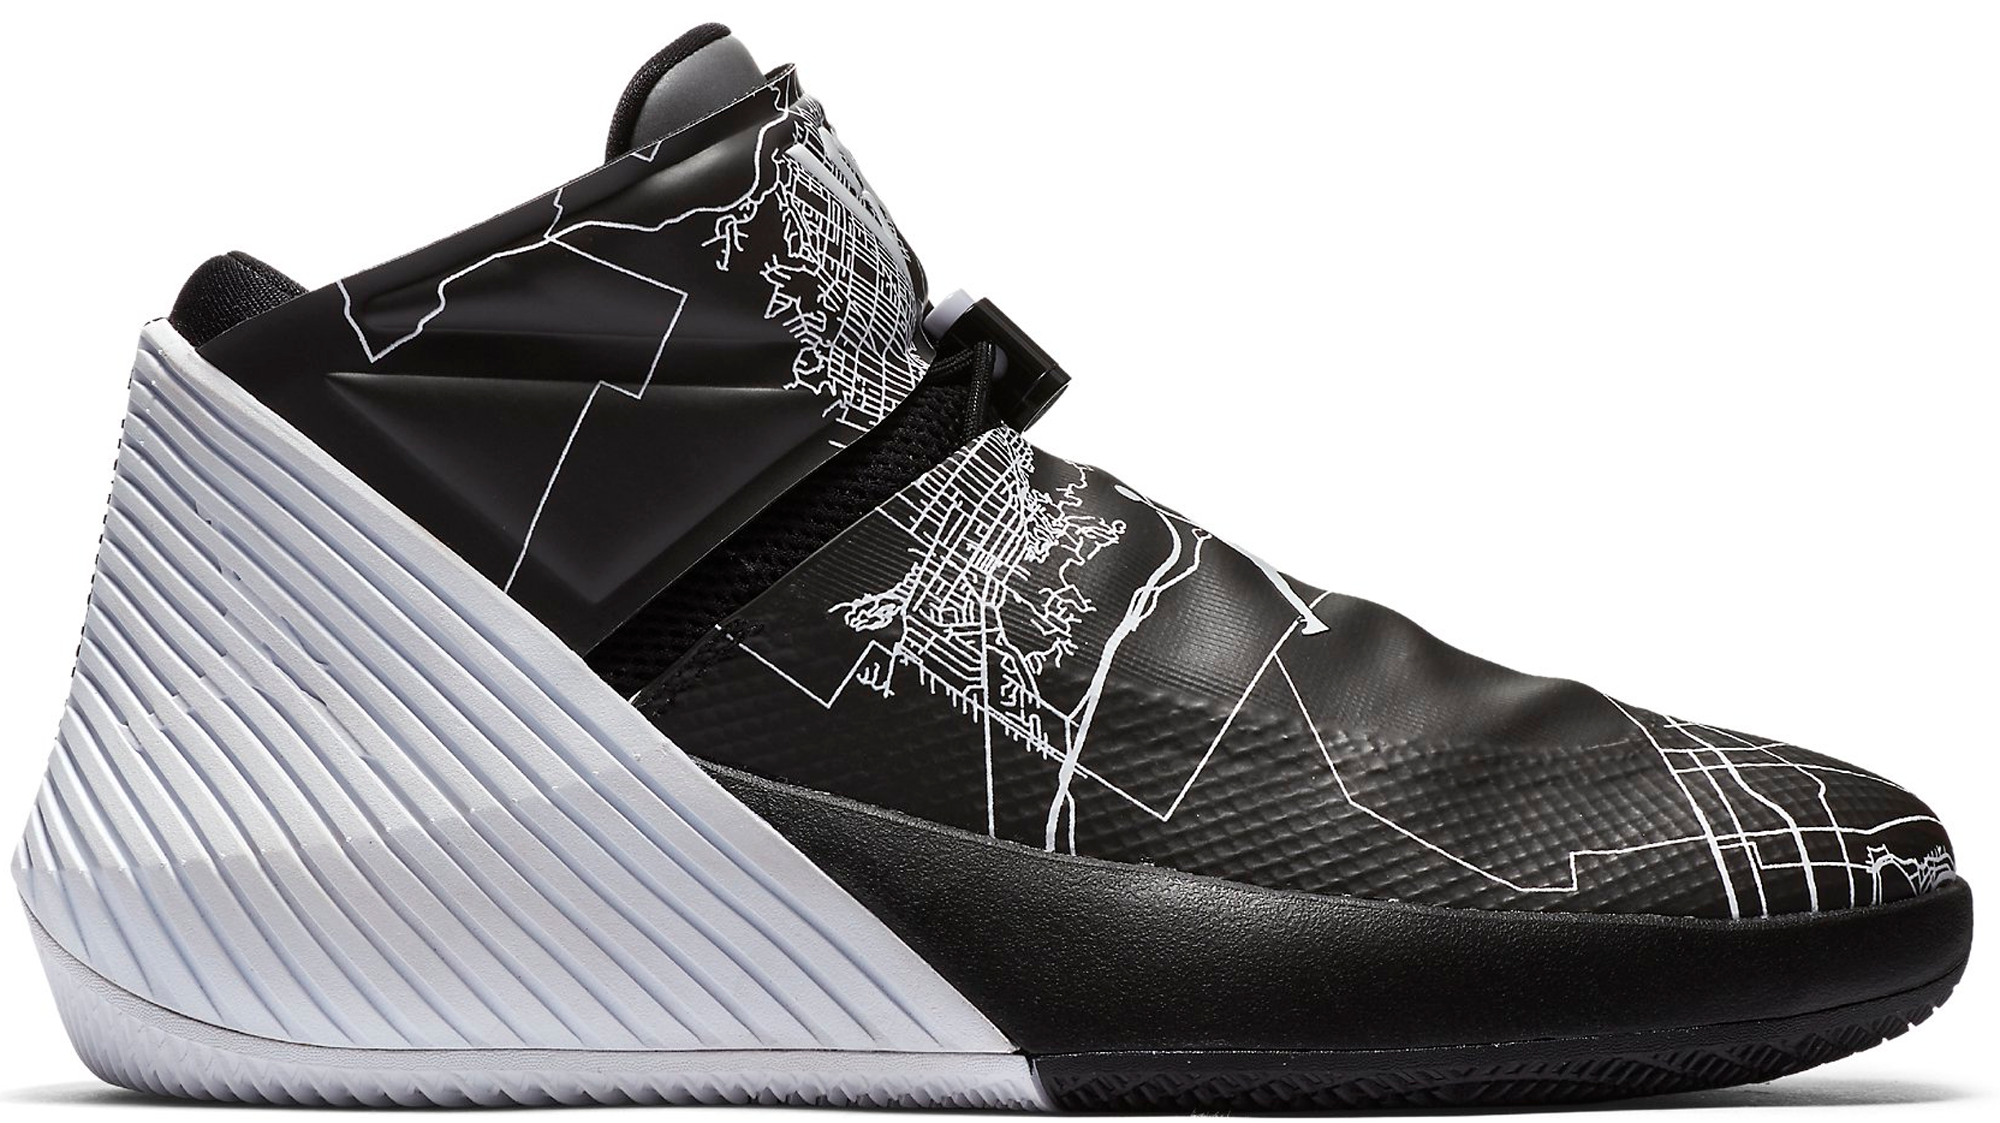 westbrook shoes all star 2018 cheap online